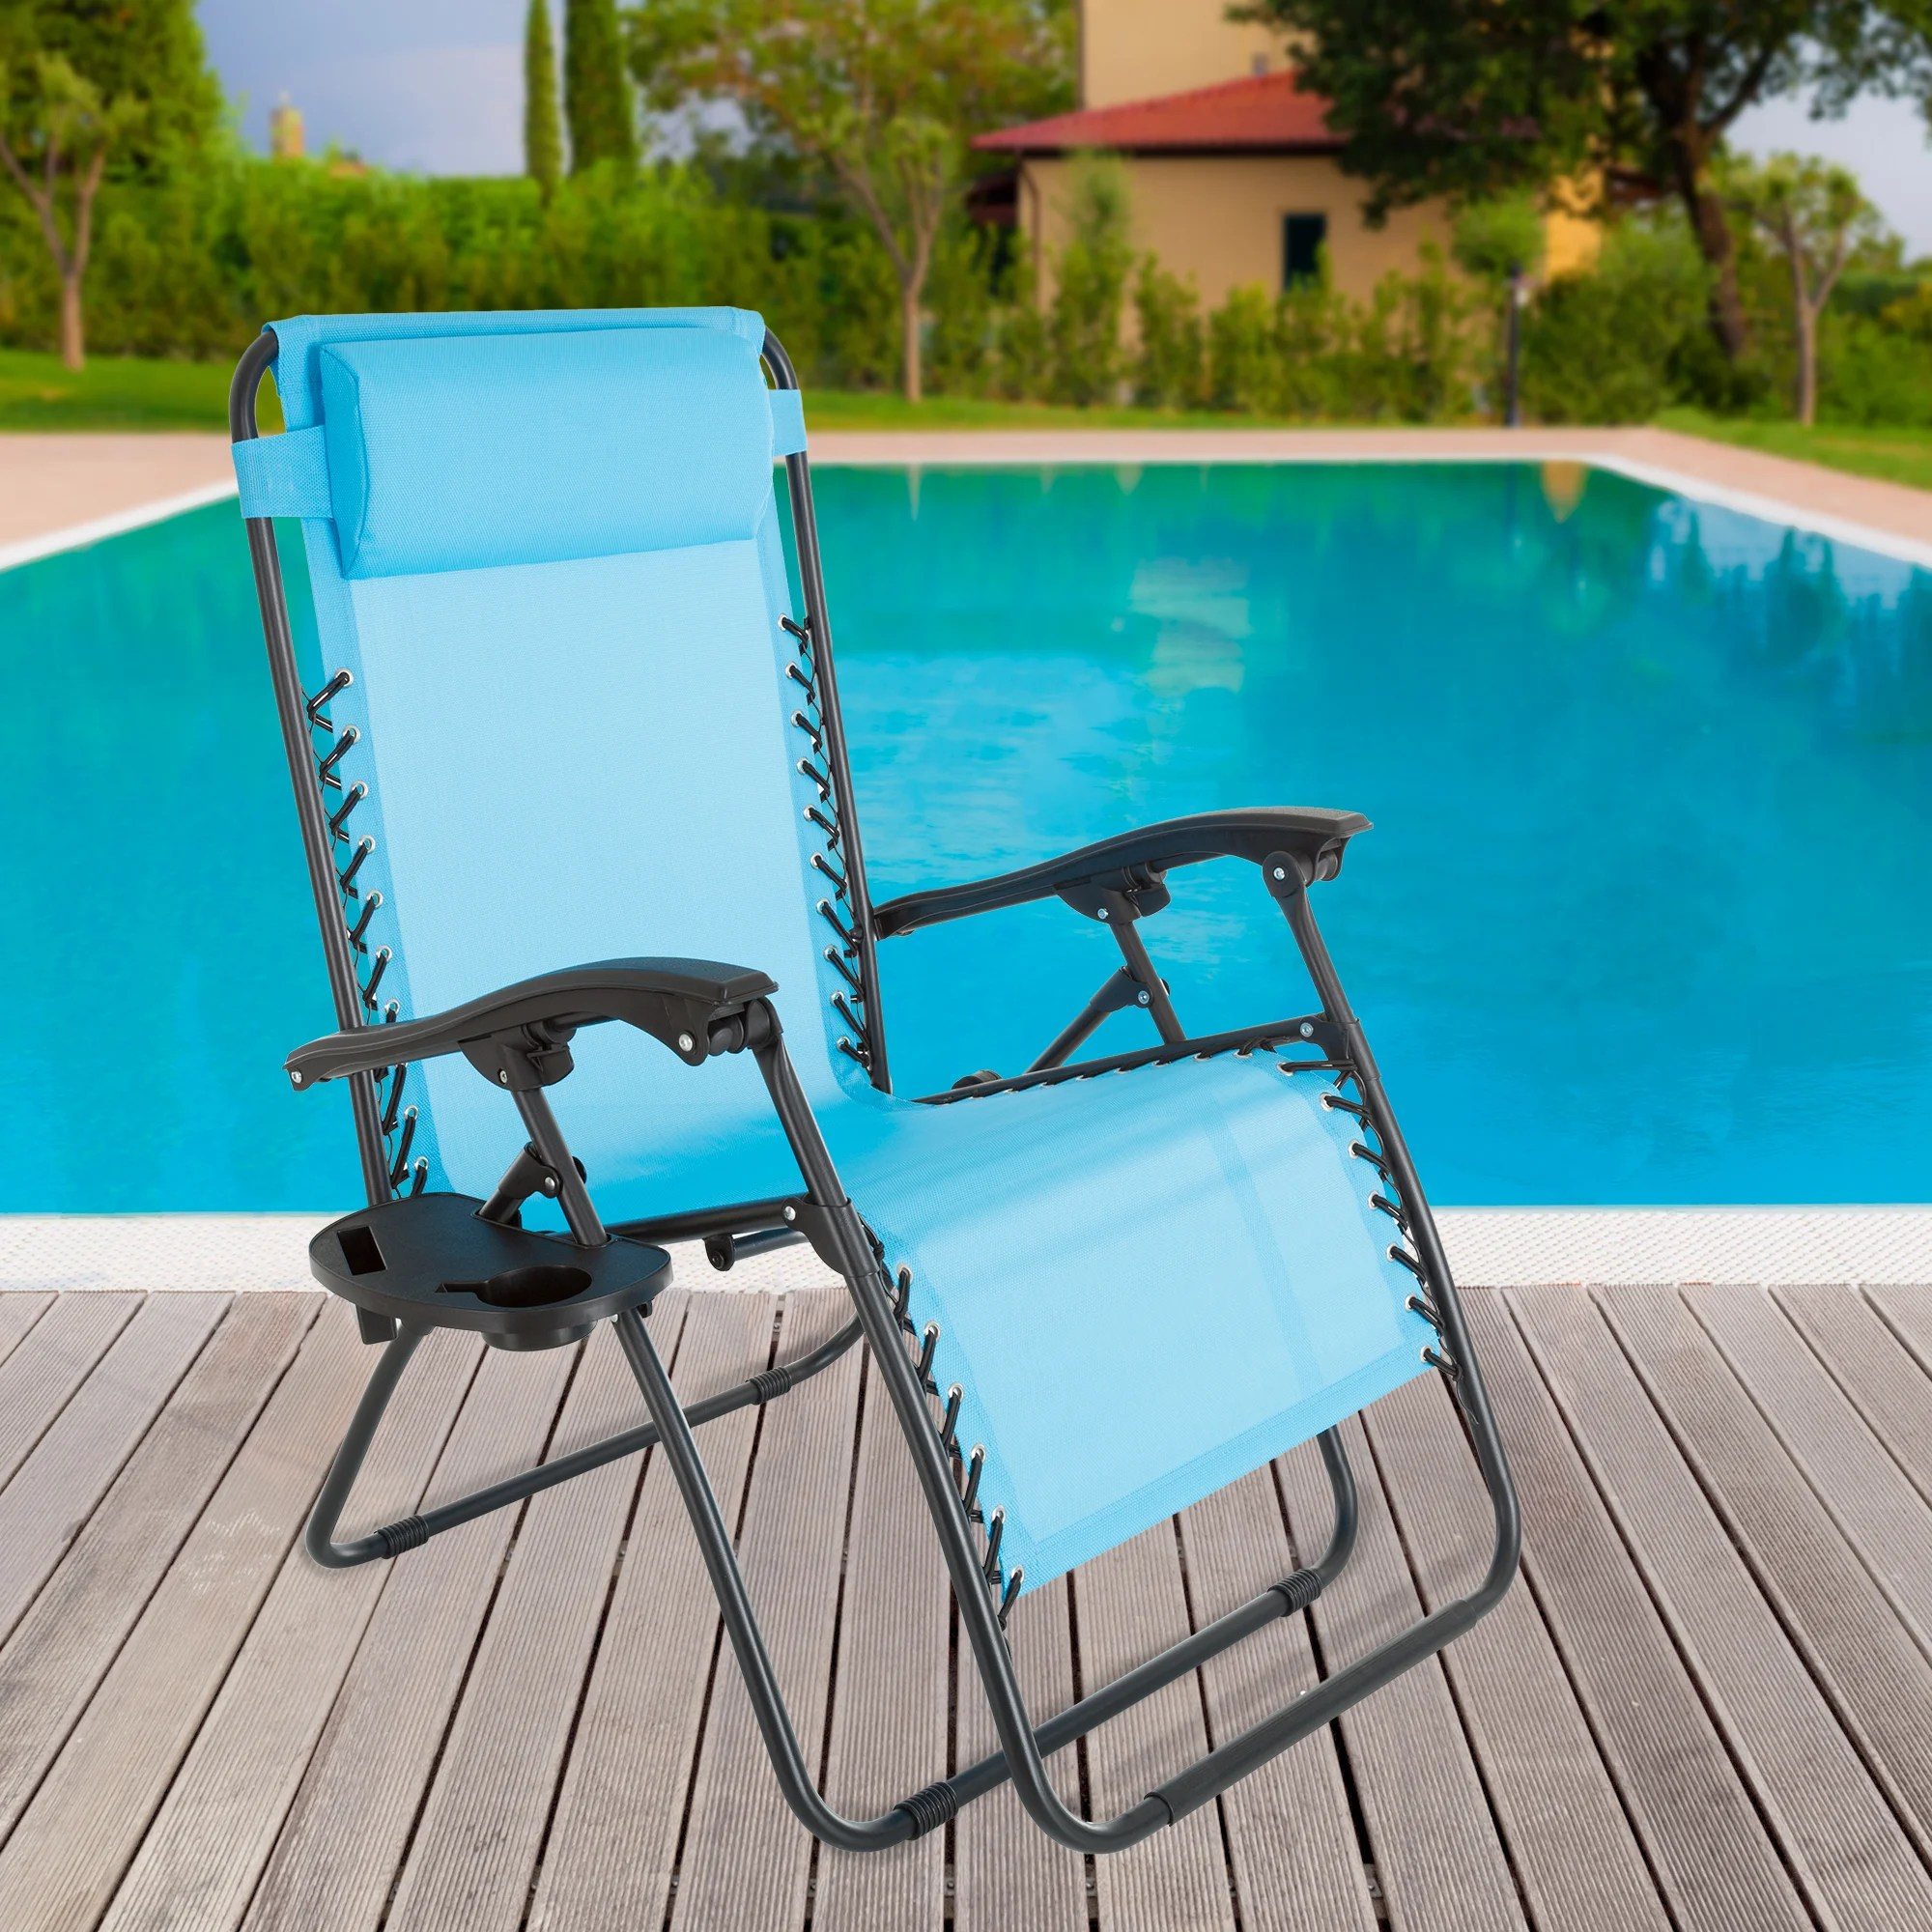 Zero Gravity Outdoor Lounge Chair Reclining Zero Gravity Chair